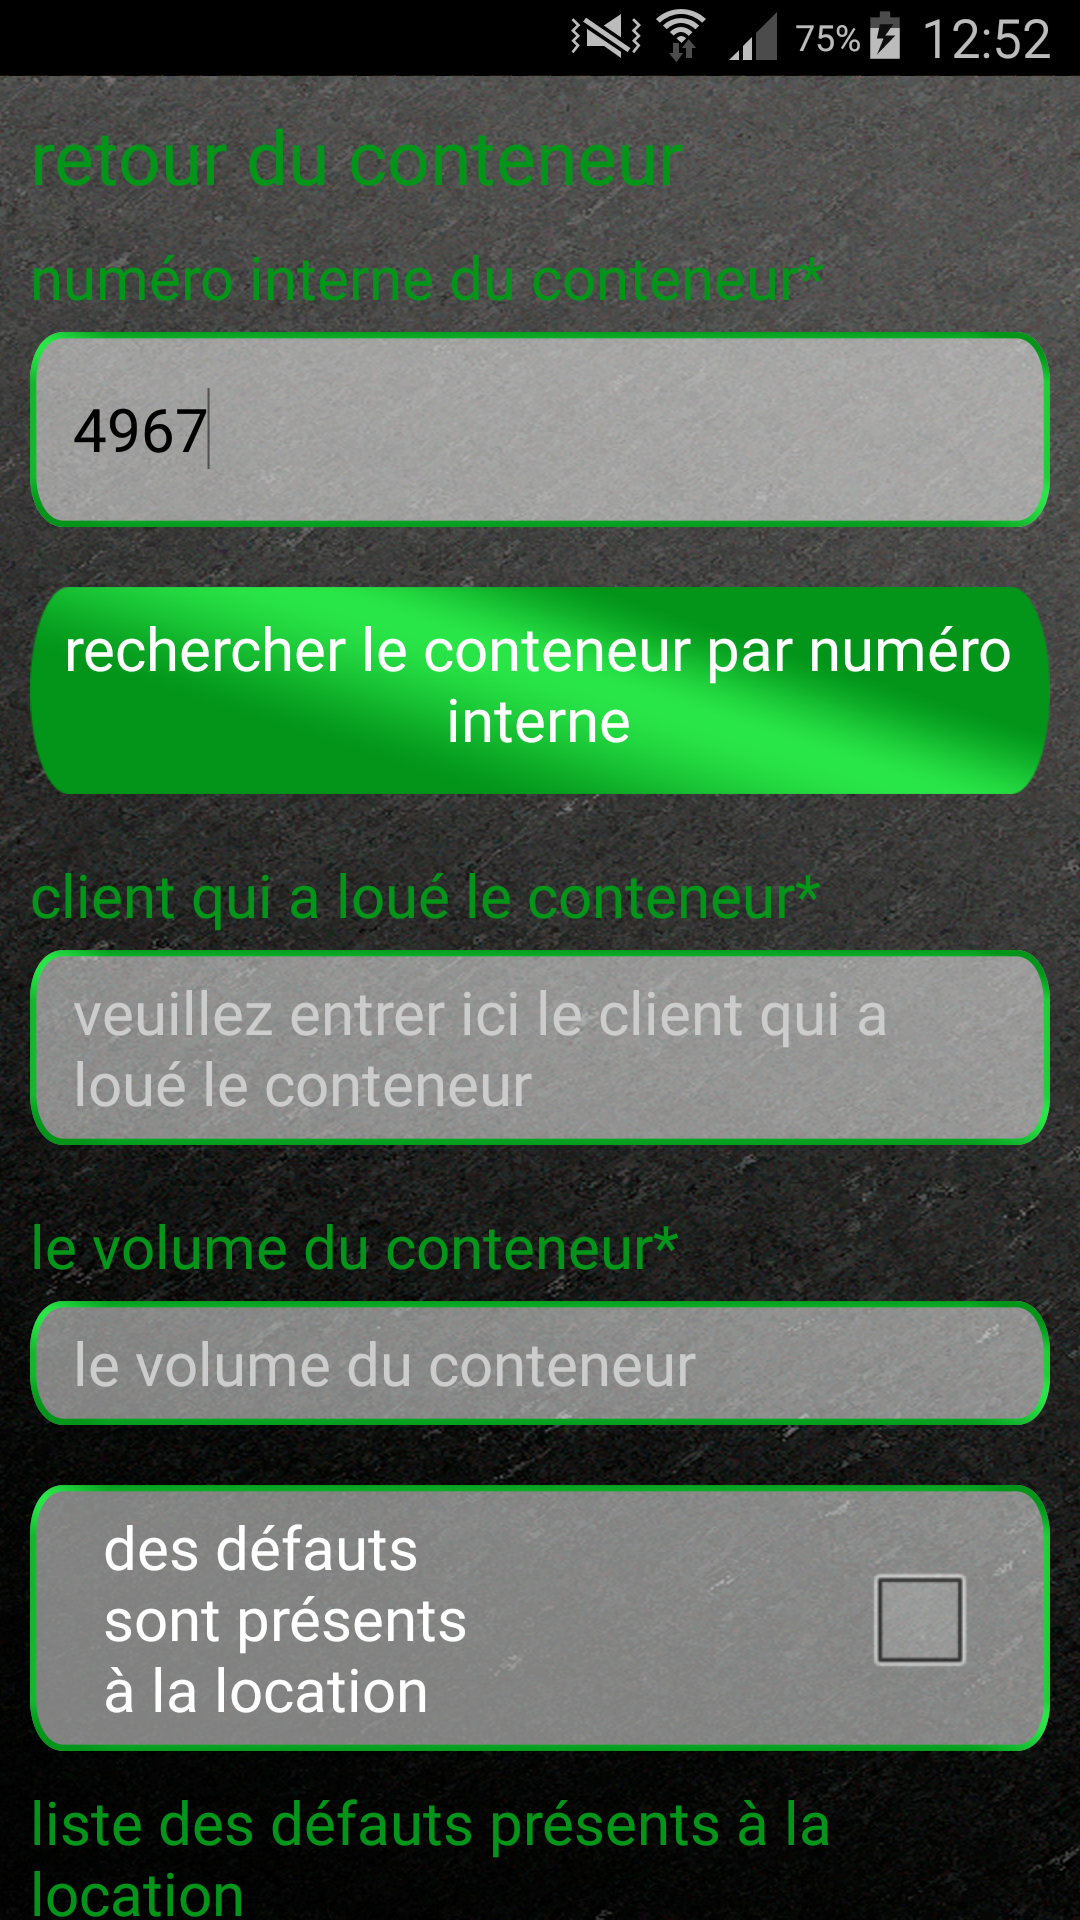 ginstr_app_containerHire_FR_5